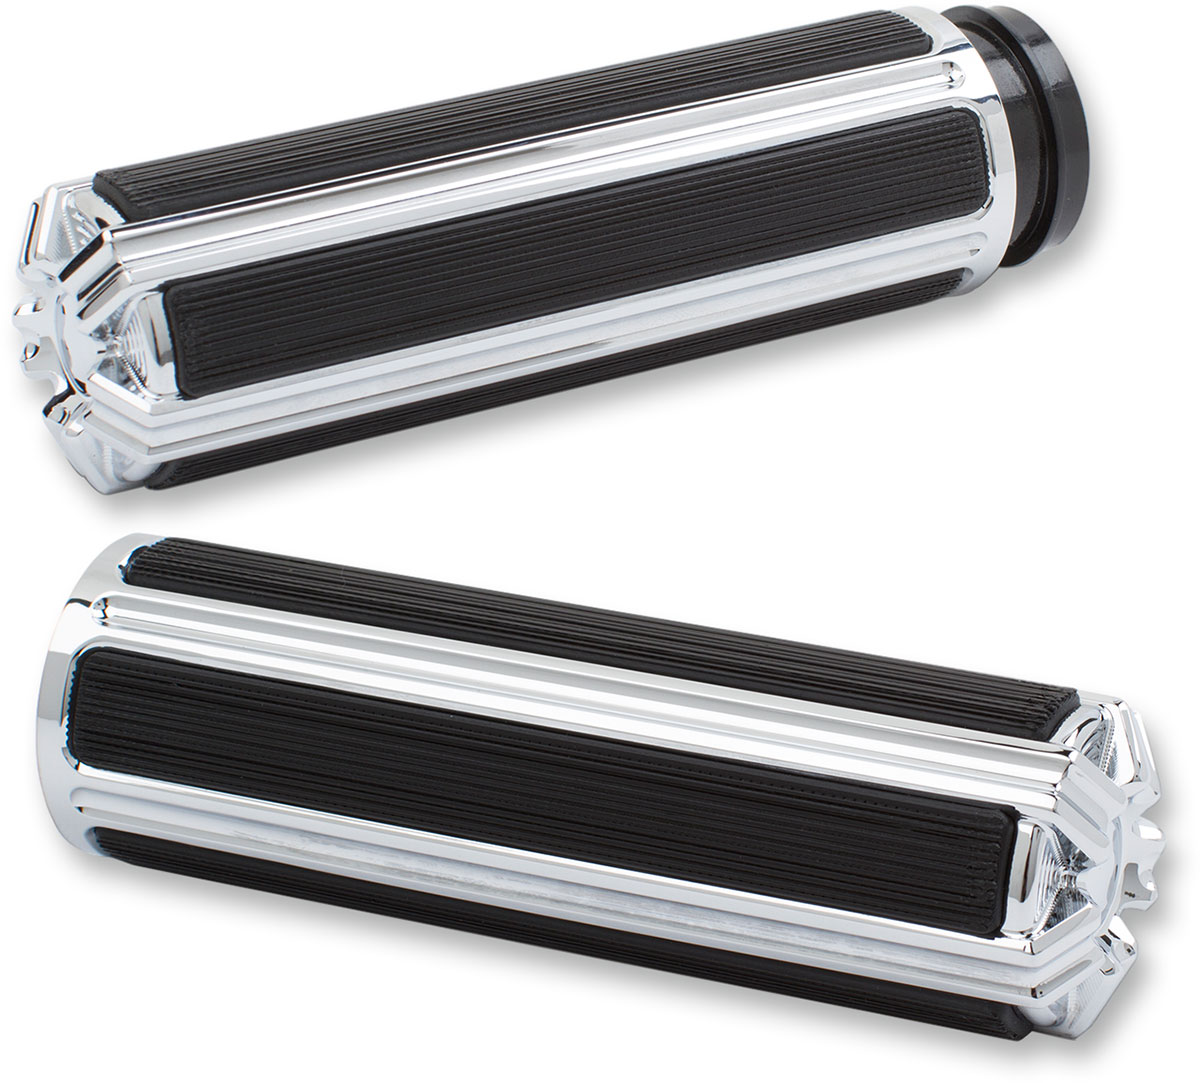 Arlen Ness - 07-119 - 10-Gauge Grips, Chrome